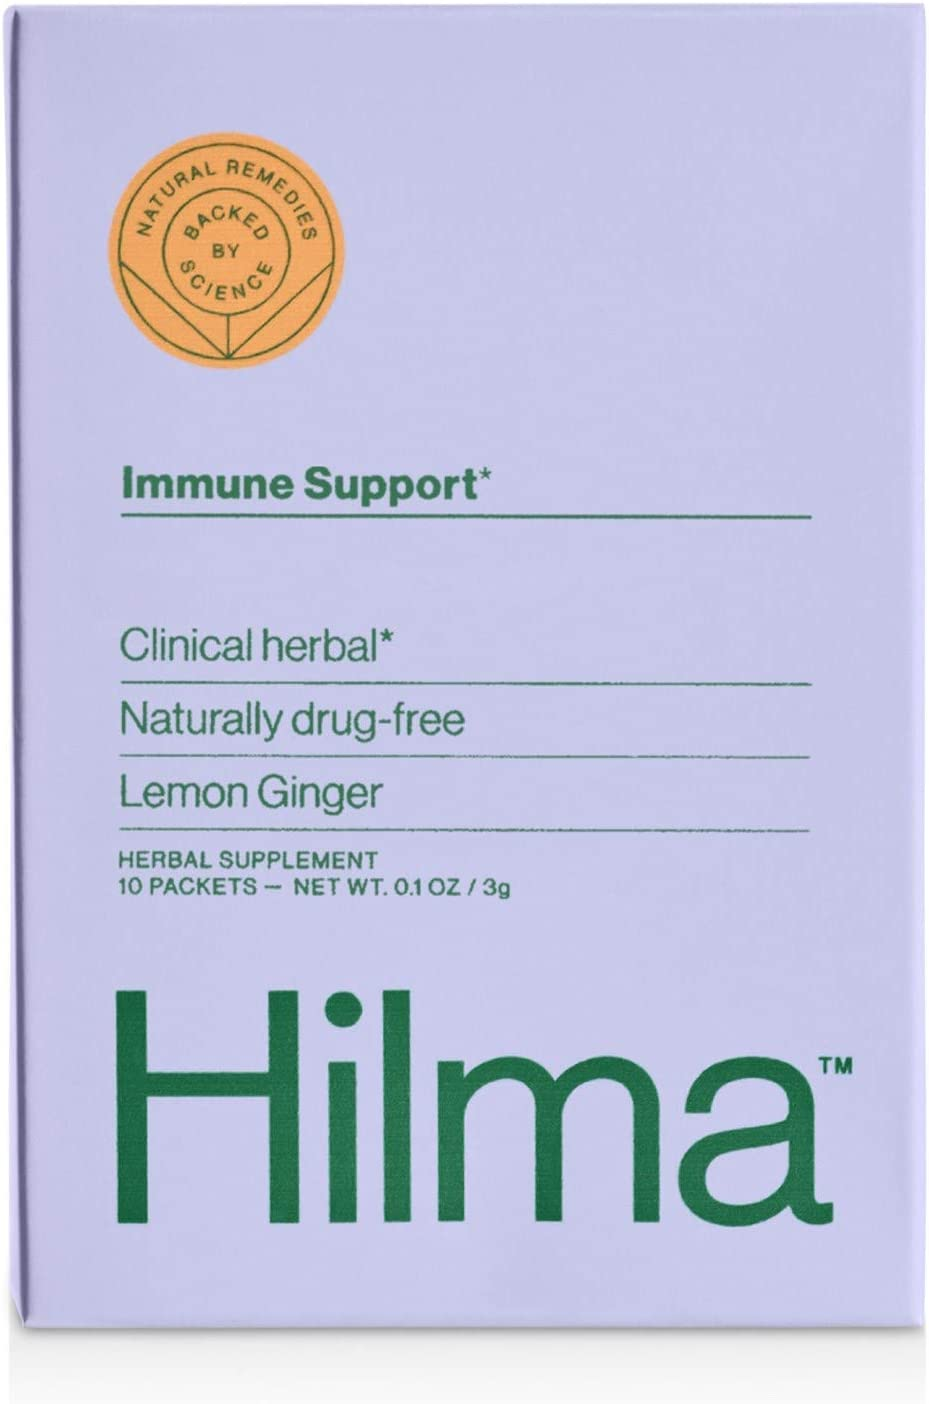 Natural Immune System Support Powder by Hilma | Clinically Proven Vitamin C, Zinc, Ginger & Turmeric | Doctor Formulated + Organic Ingredients | Refreshing Lemon Ginger Flavor | 10 Packets